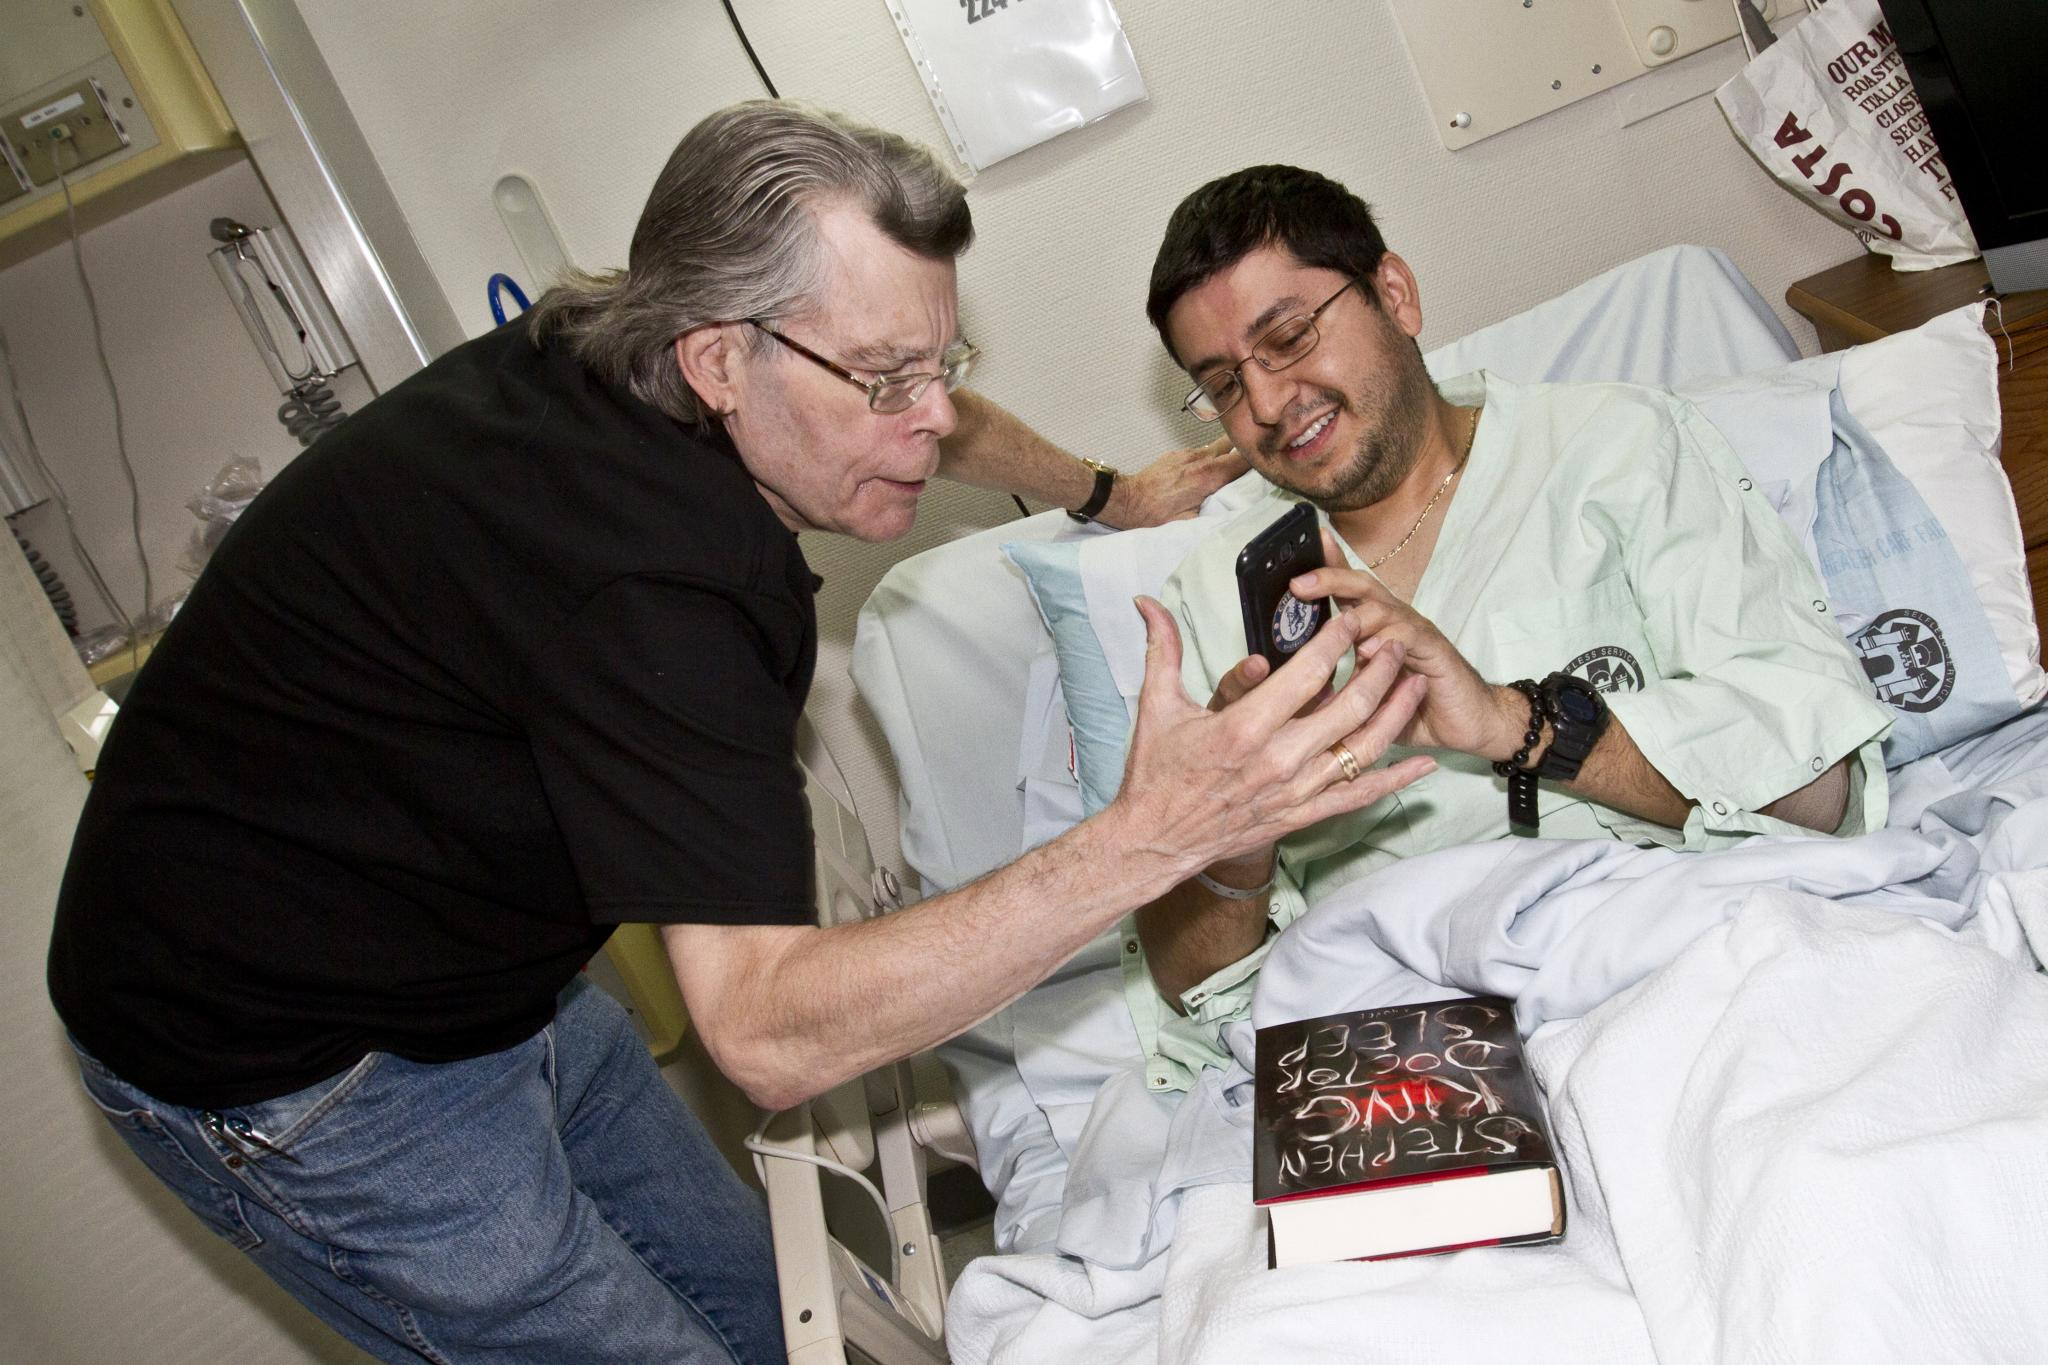 Stephen King shares a moment with Navy Lt. j.g. Pablo Yepez at Landstuhl Regional Medical Center in Germany. USO photo by Mike Clifton